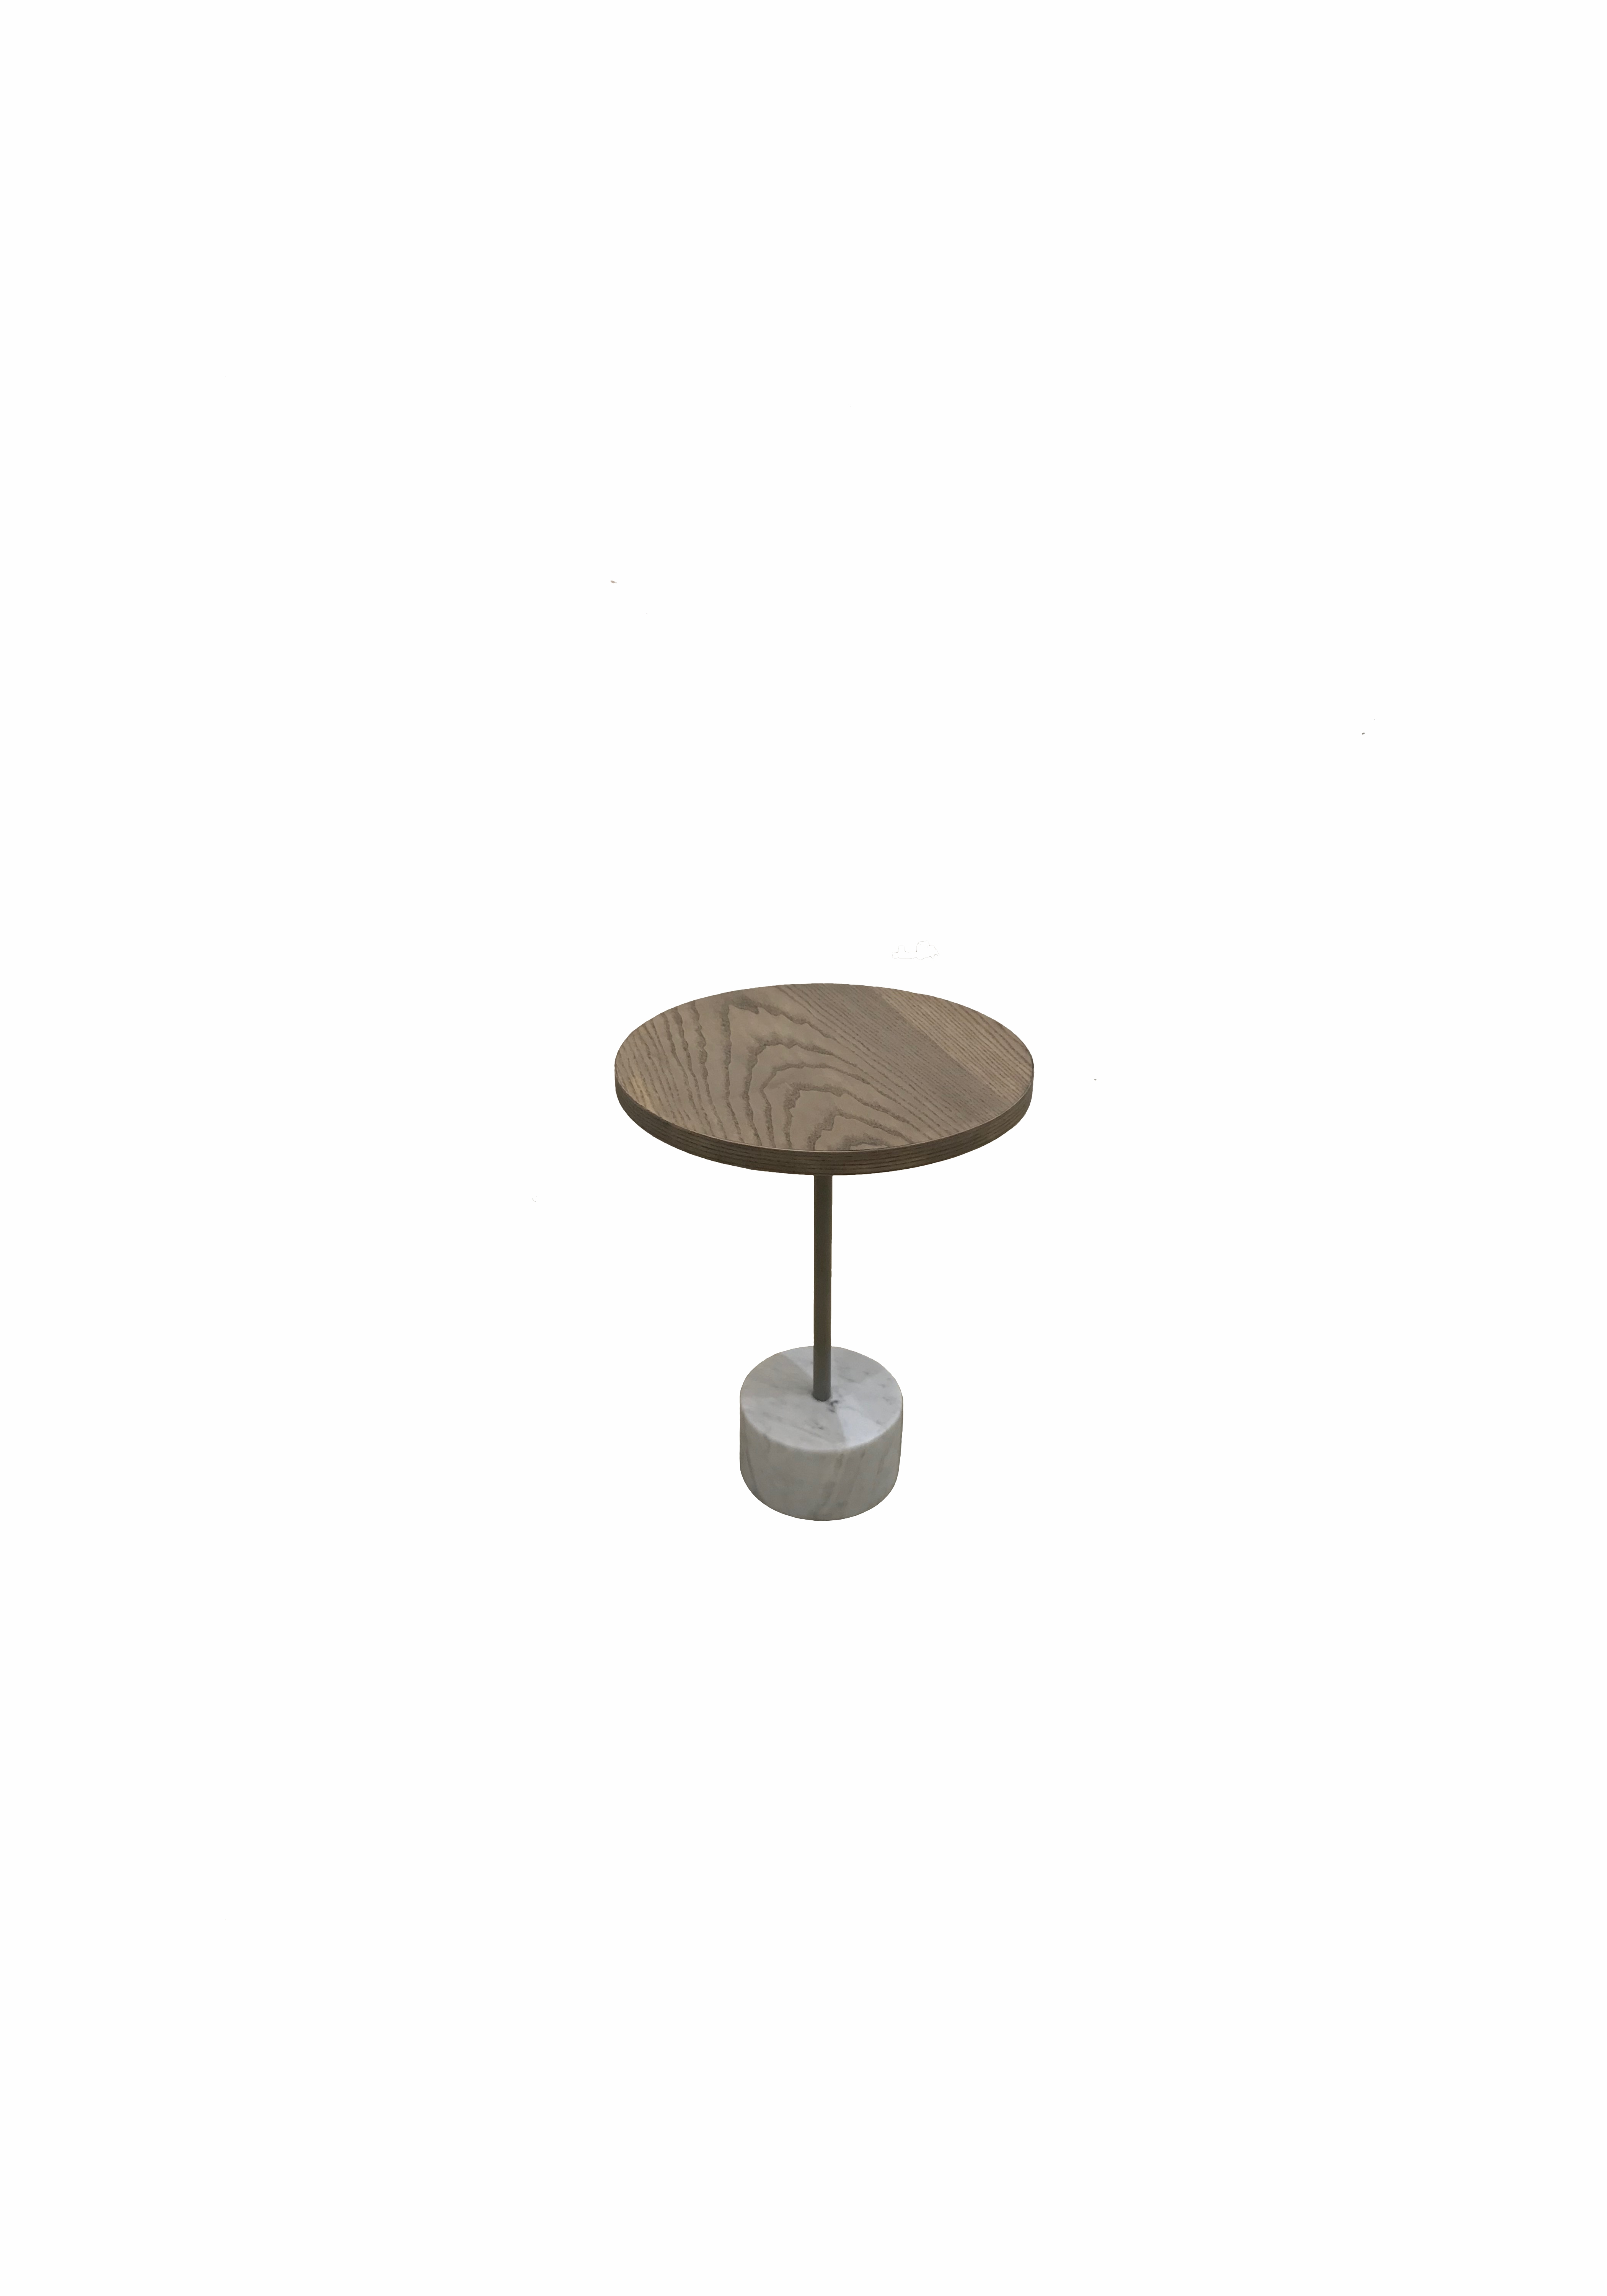 Risson side table